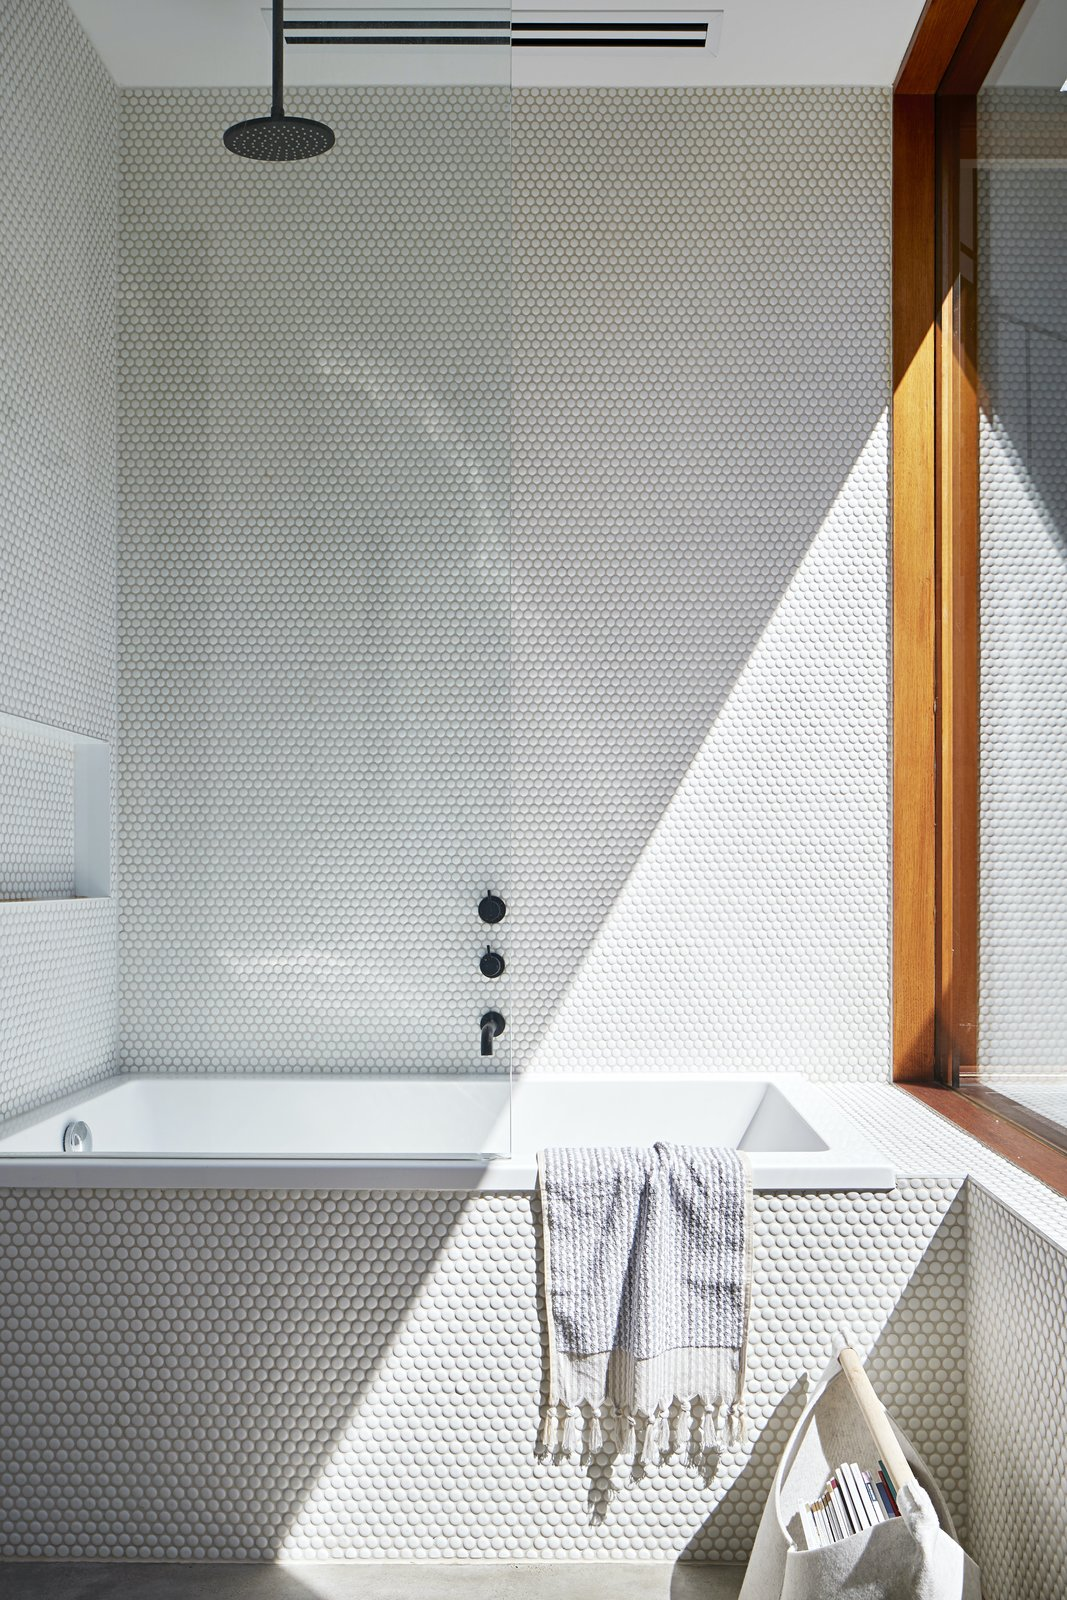 Bathroom at Charles St by Lande Architects.